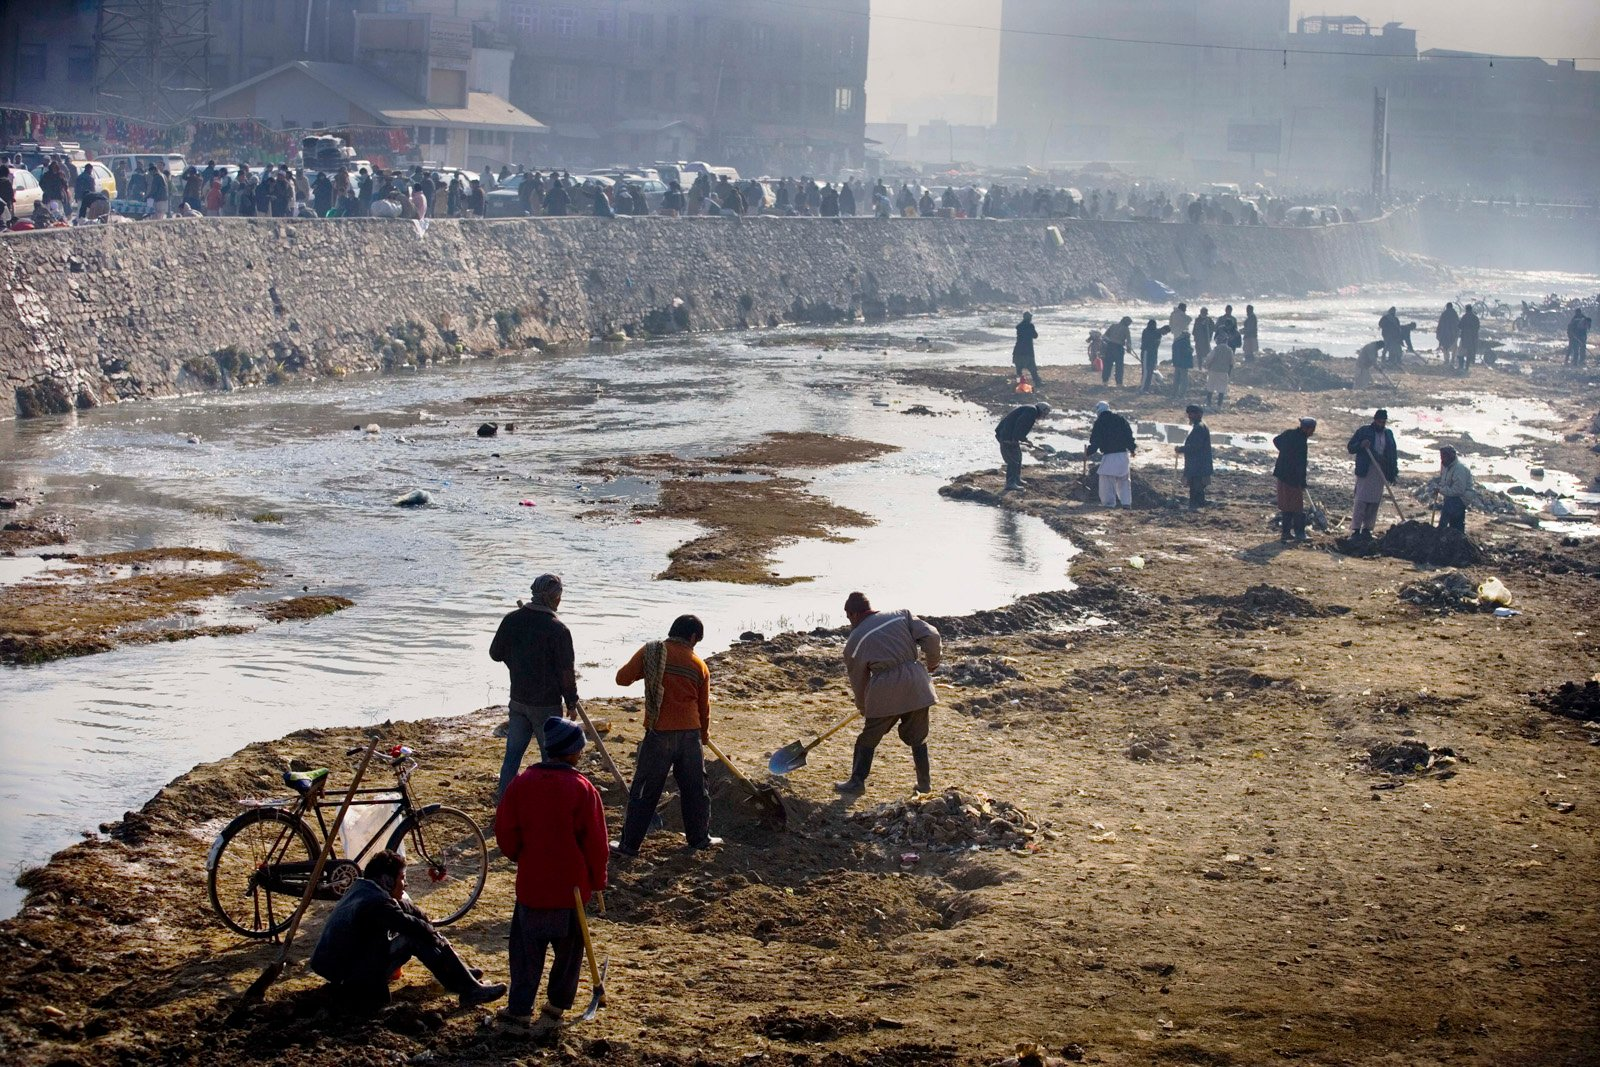 Workers clear out the Kabul river. Kabul 's main river has become increasingly polluted over the last few years, and it is currently being dredged